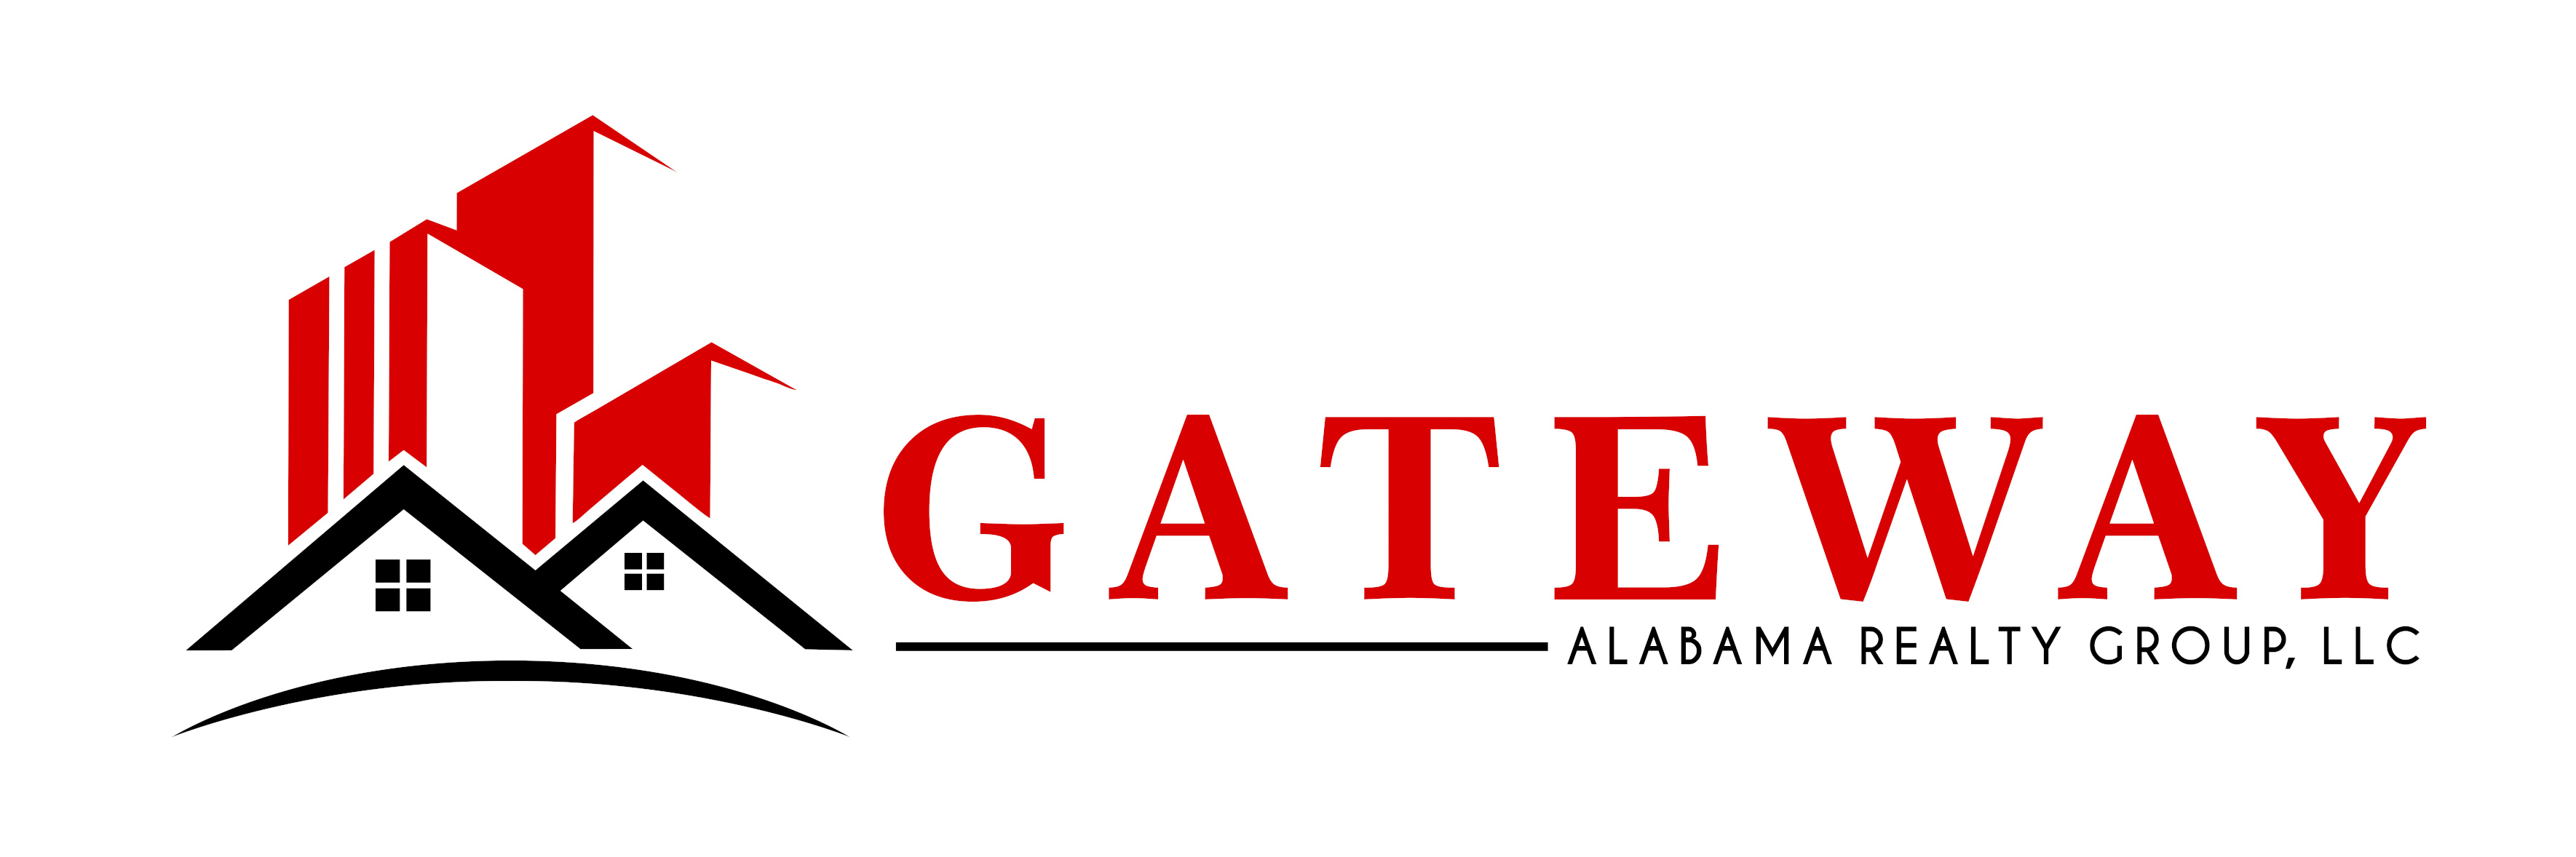 Gateway Alabama Realty Group